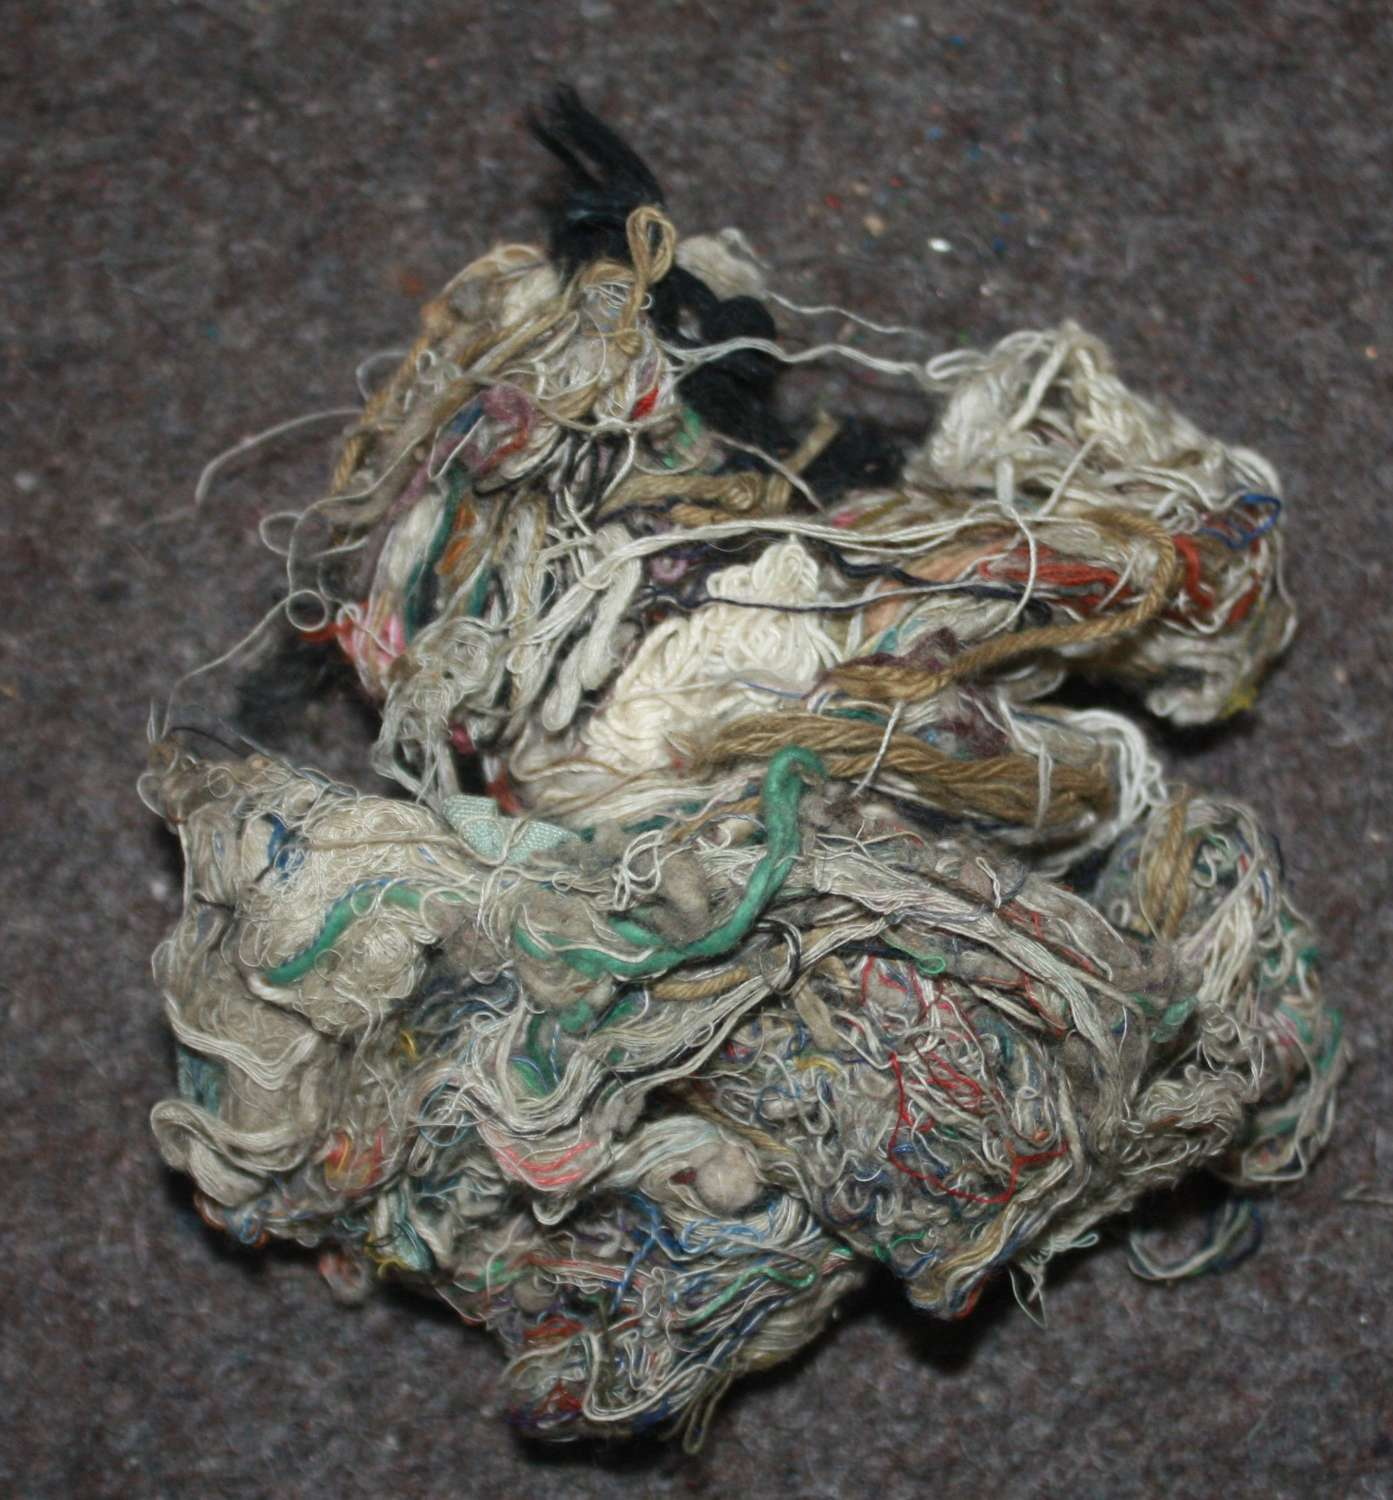 A HANDFULL OF WWII COTTON WAIST FOR THE GAS MASK BAG ORIGINAL LOT